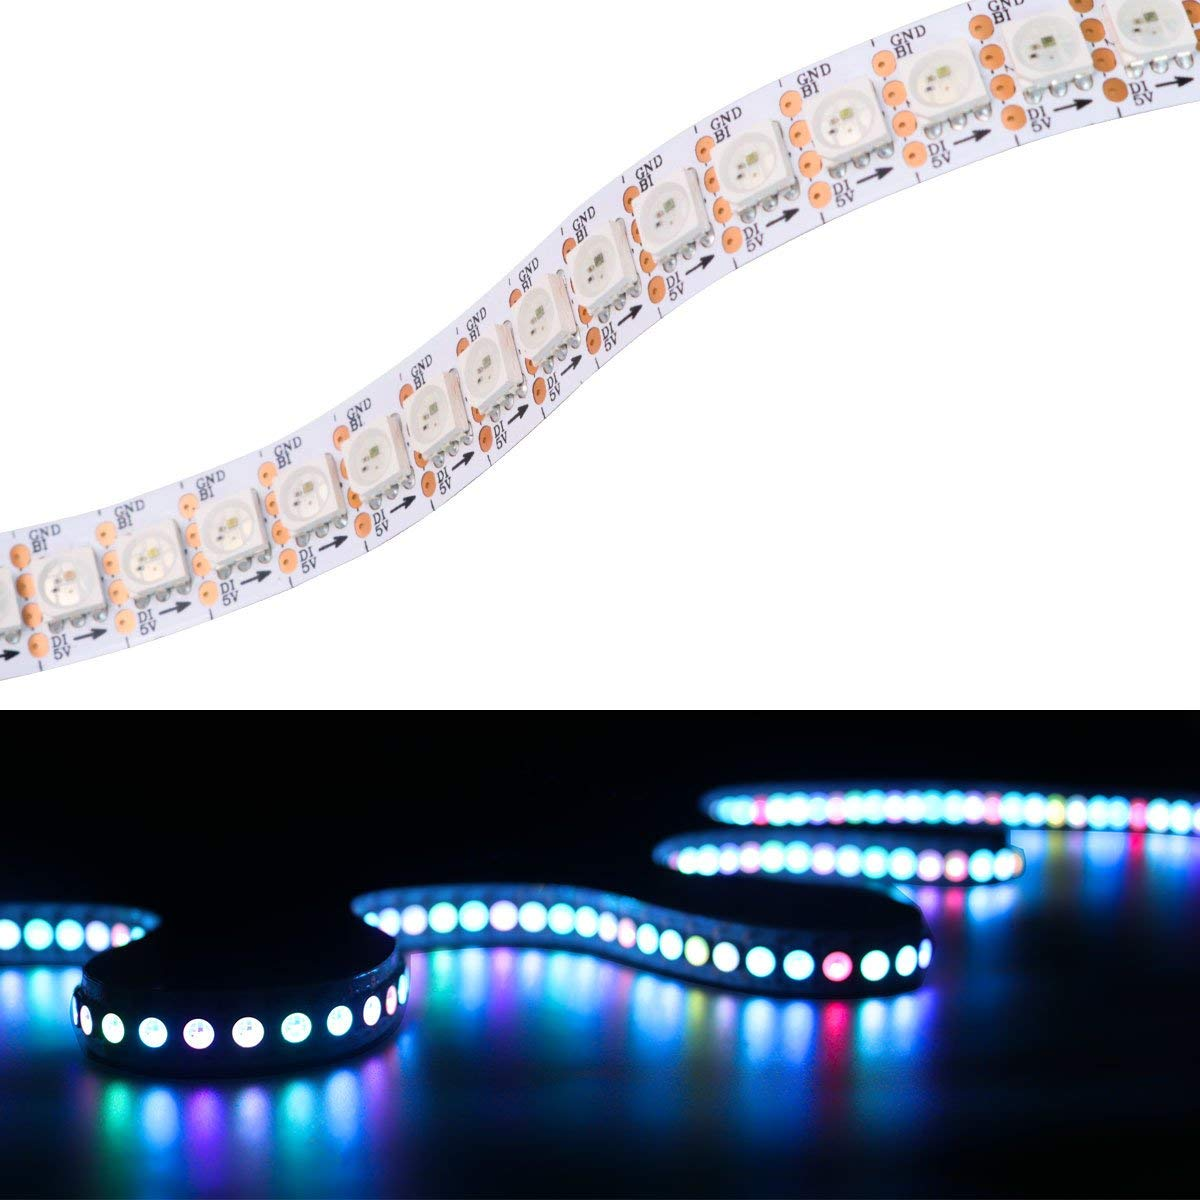 Mokungit WS2813 LED Strip WS2813(Upgraded WS2812B) Dual Signal Wires Individually Addressable Dream Color 5050 RGB Flexible Strip Light 3.2ft 144 LEDs White PCB Non-waterproof DC5V